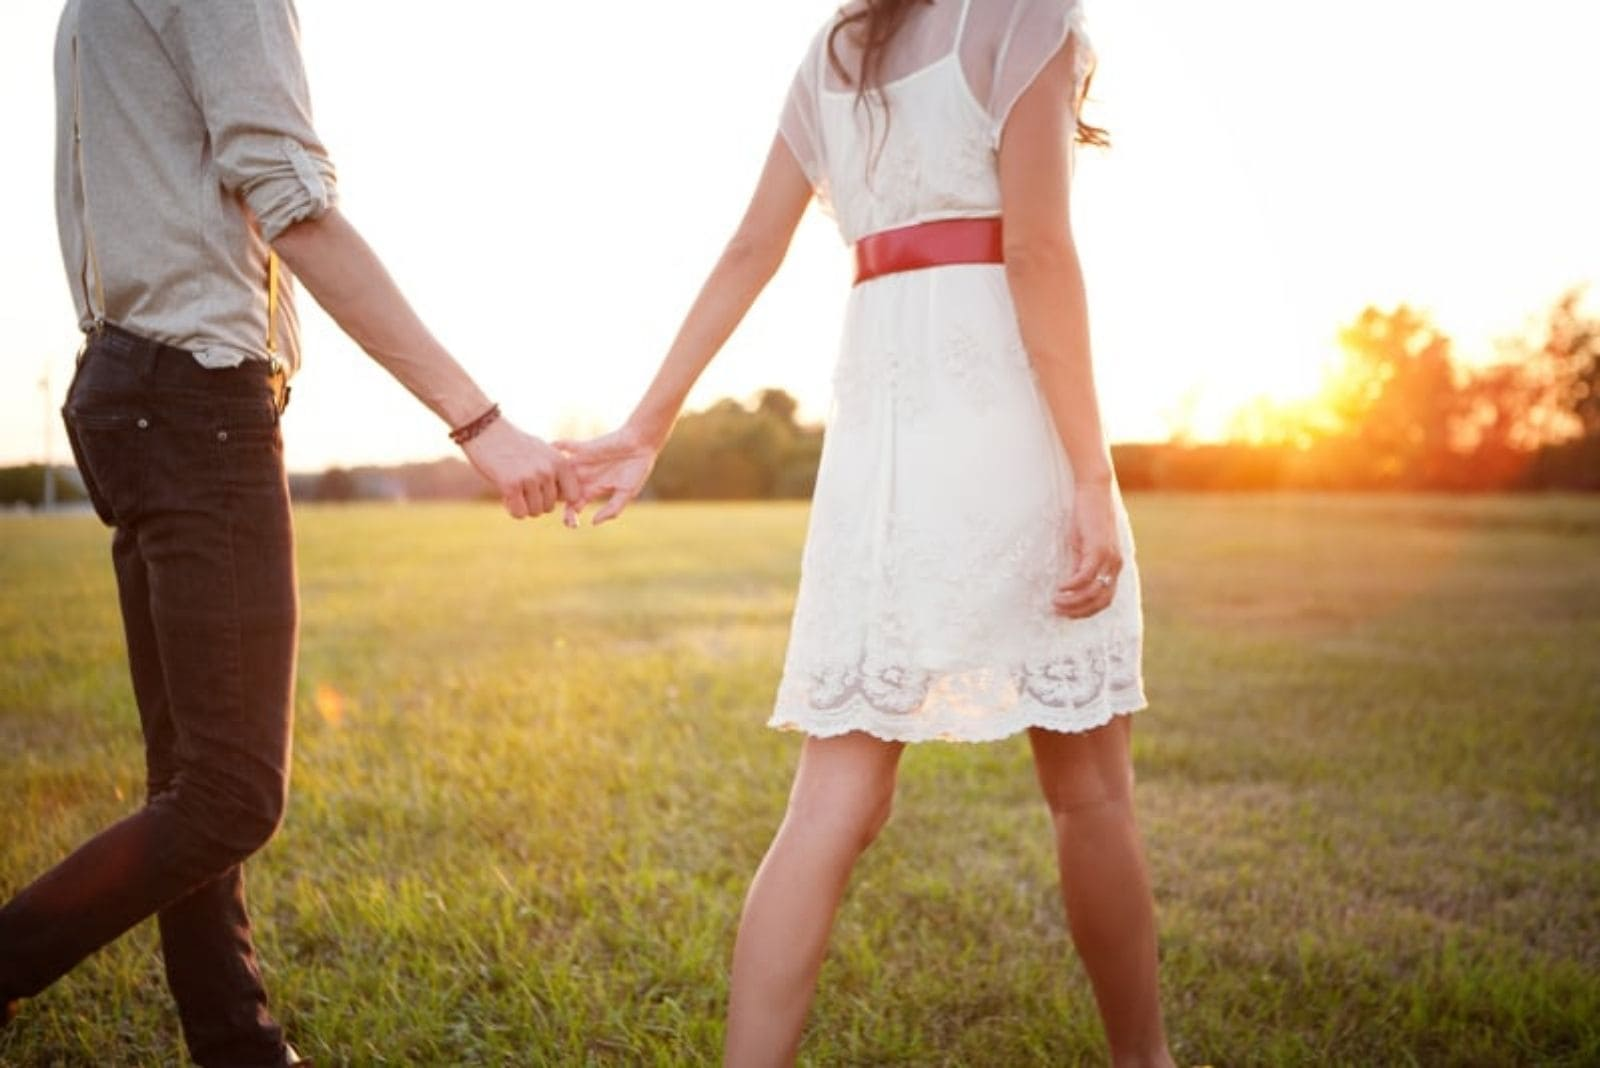 couple walking in the sunkissed field